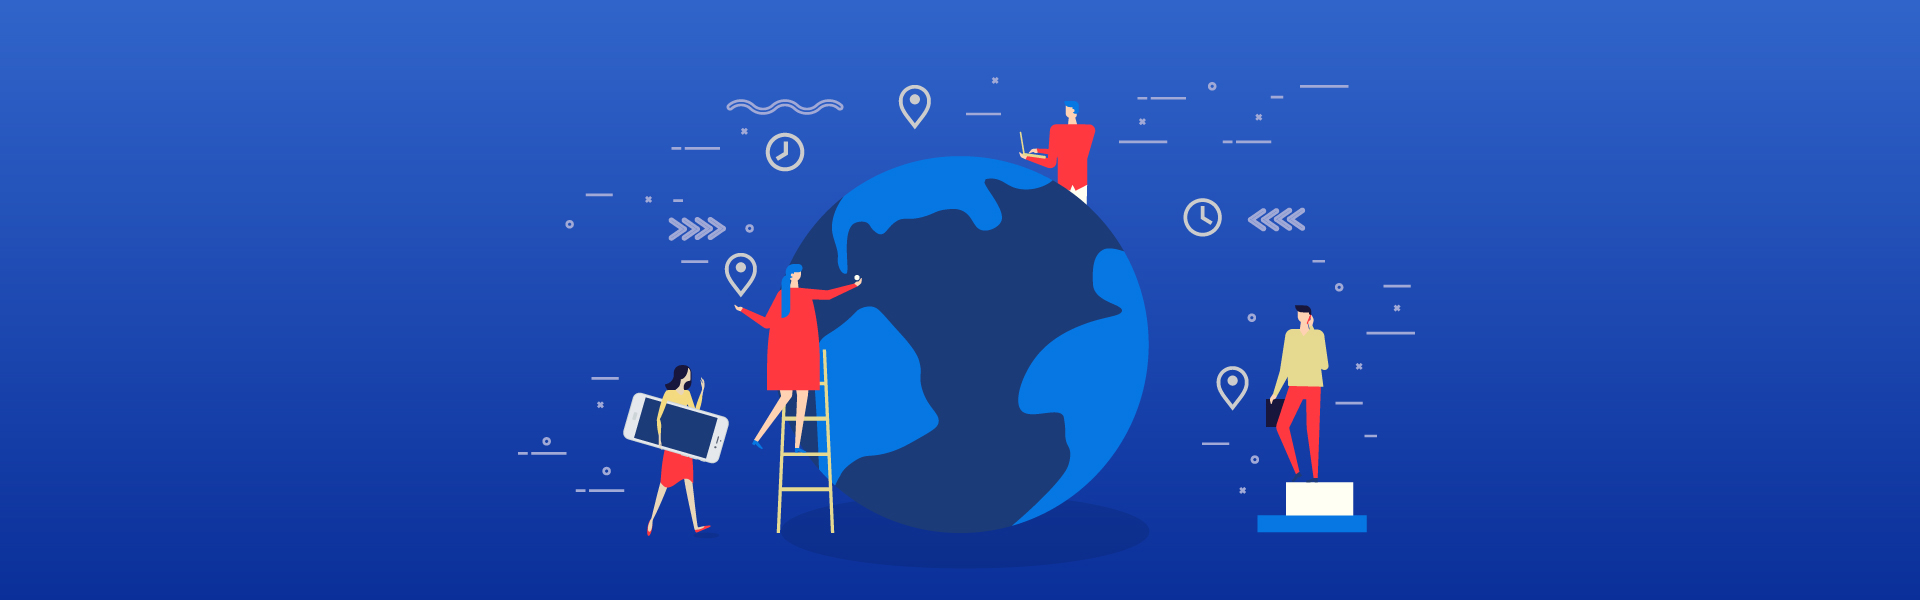 Globalization and Internationalization concepts for apps